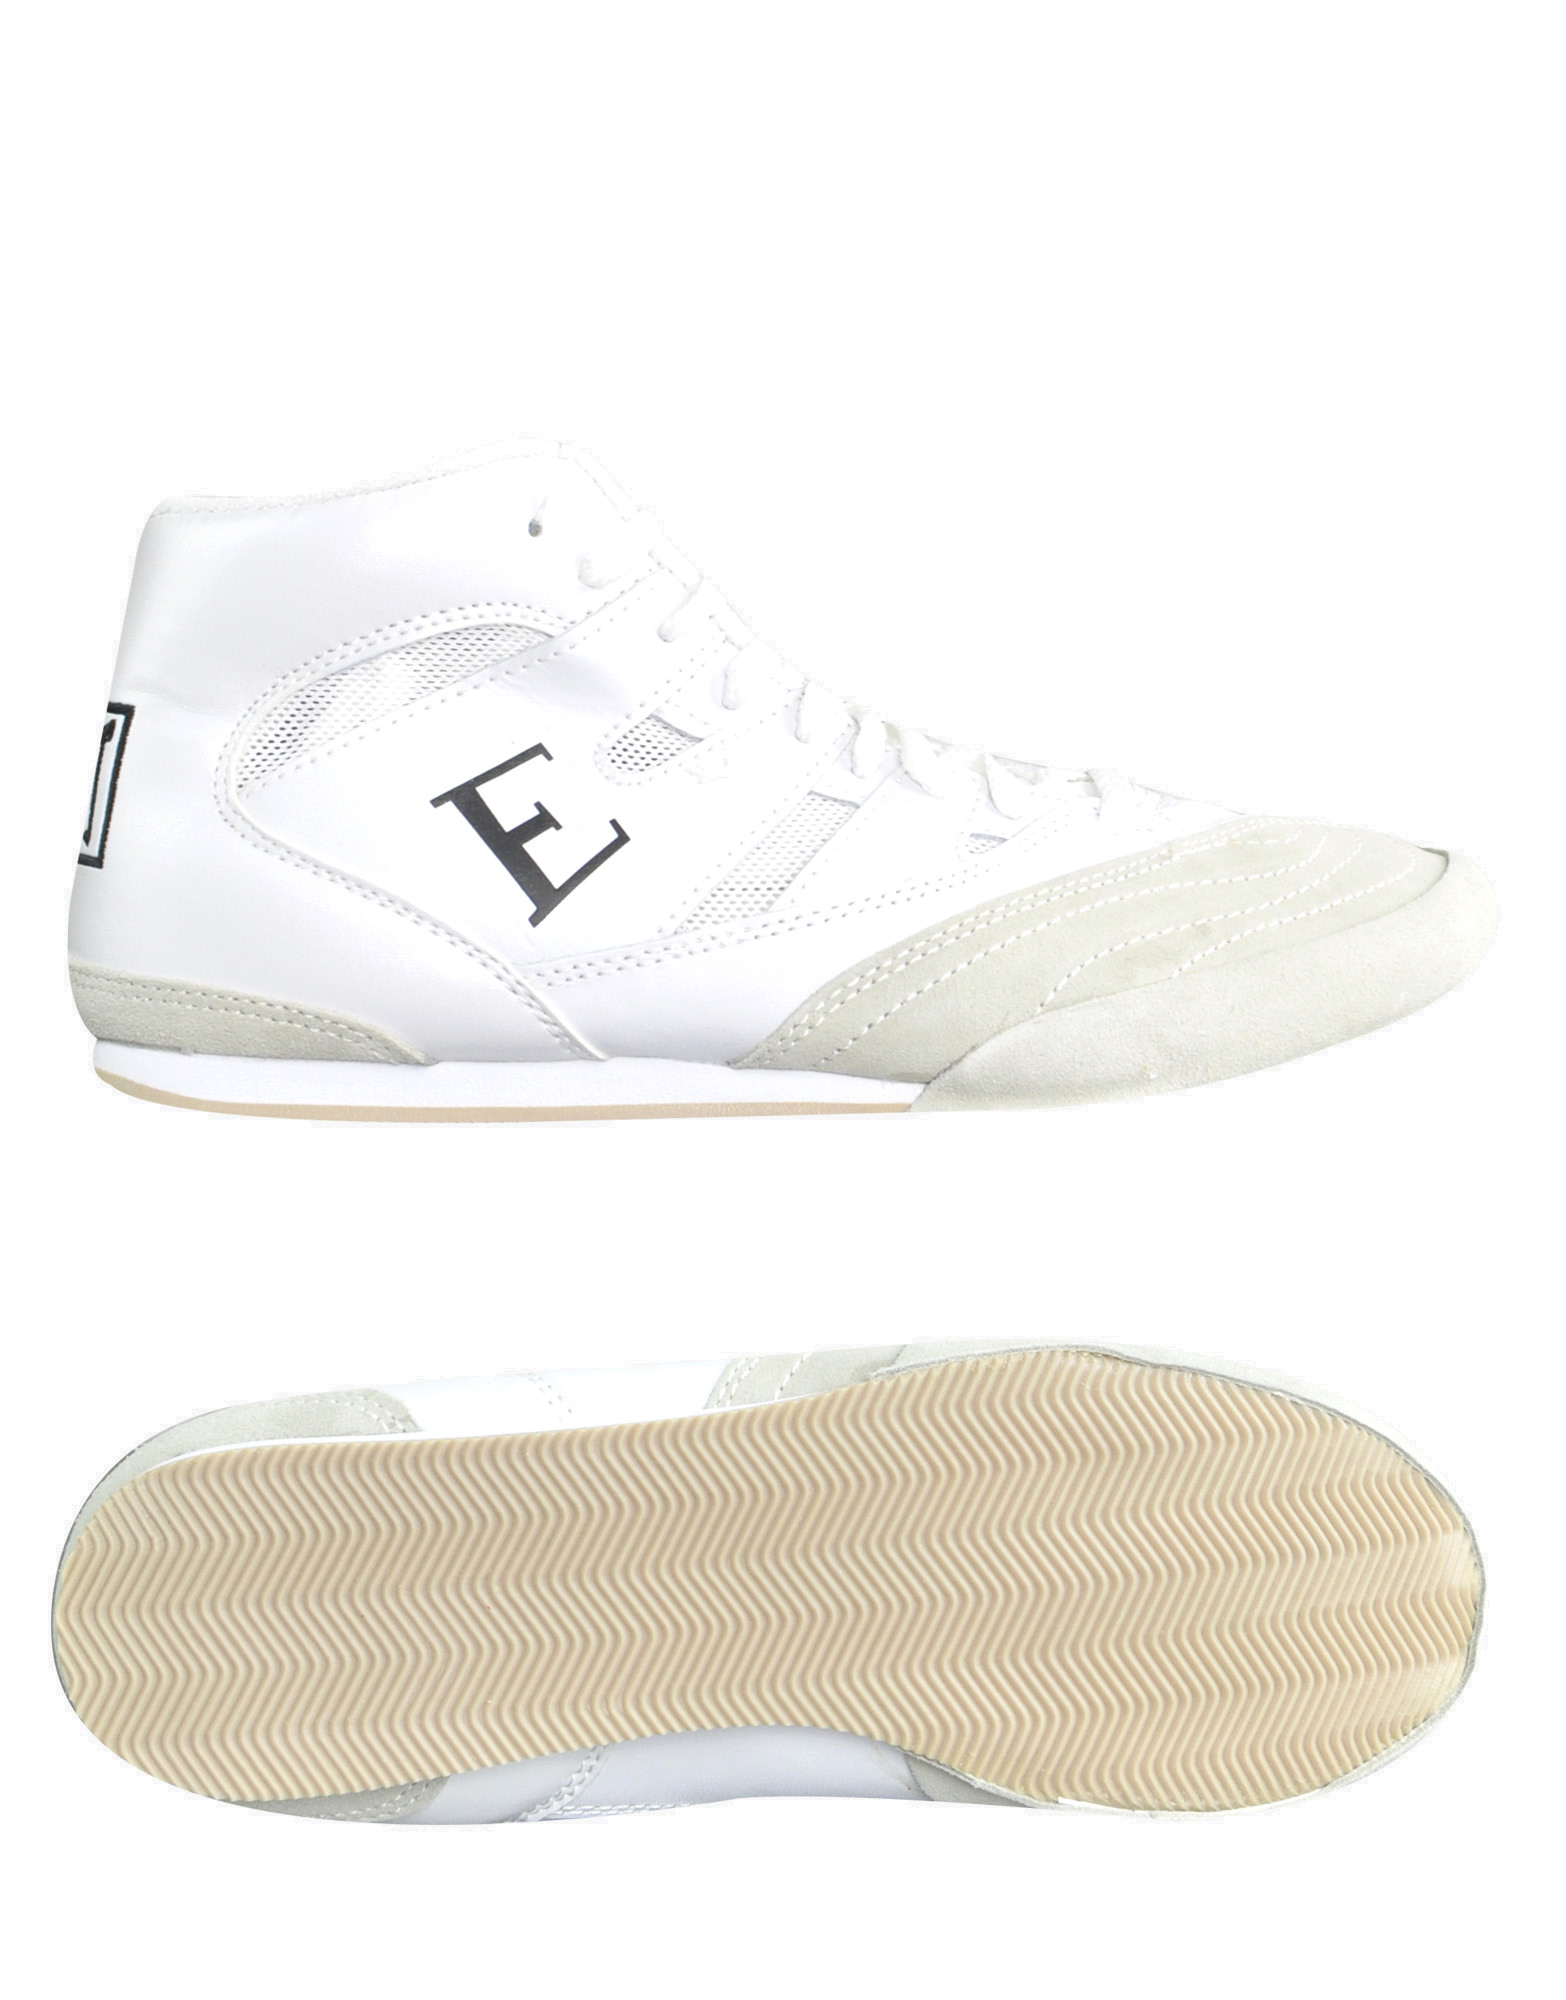 46aac1c99 EVERLAST BOXING Professional Suede Boxing Lo-Top Shoe Colour: White